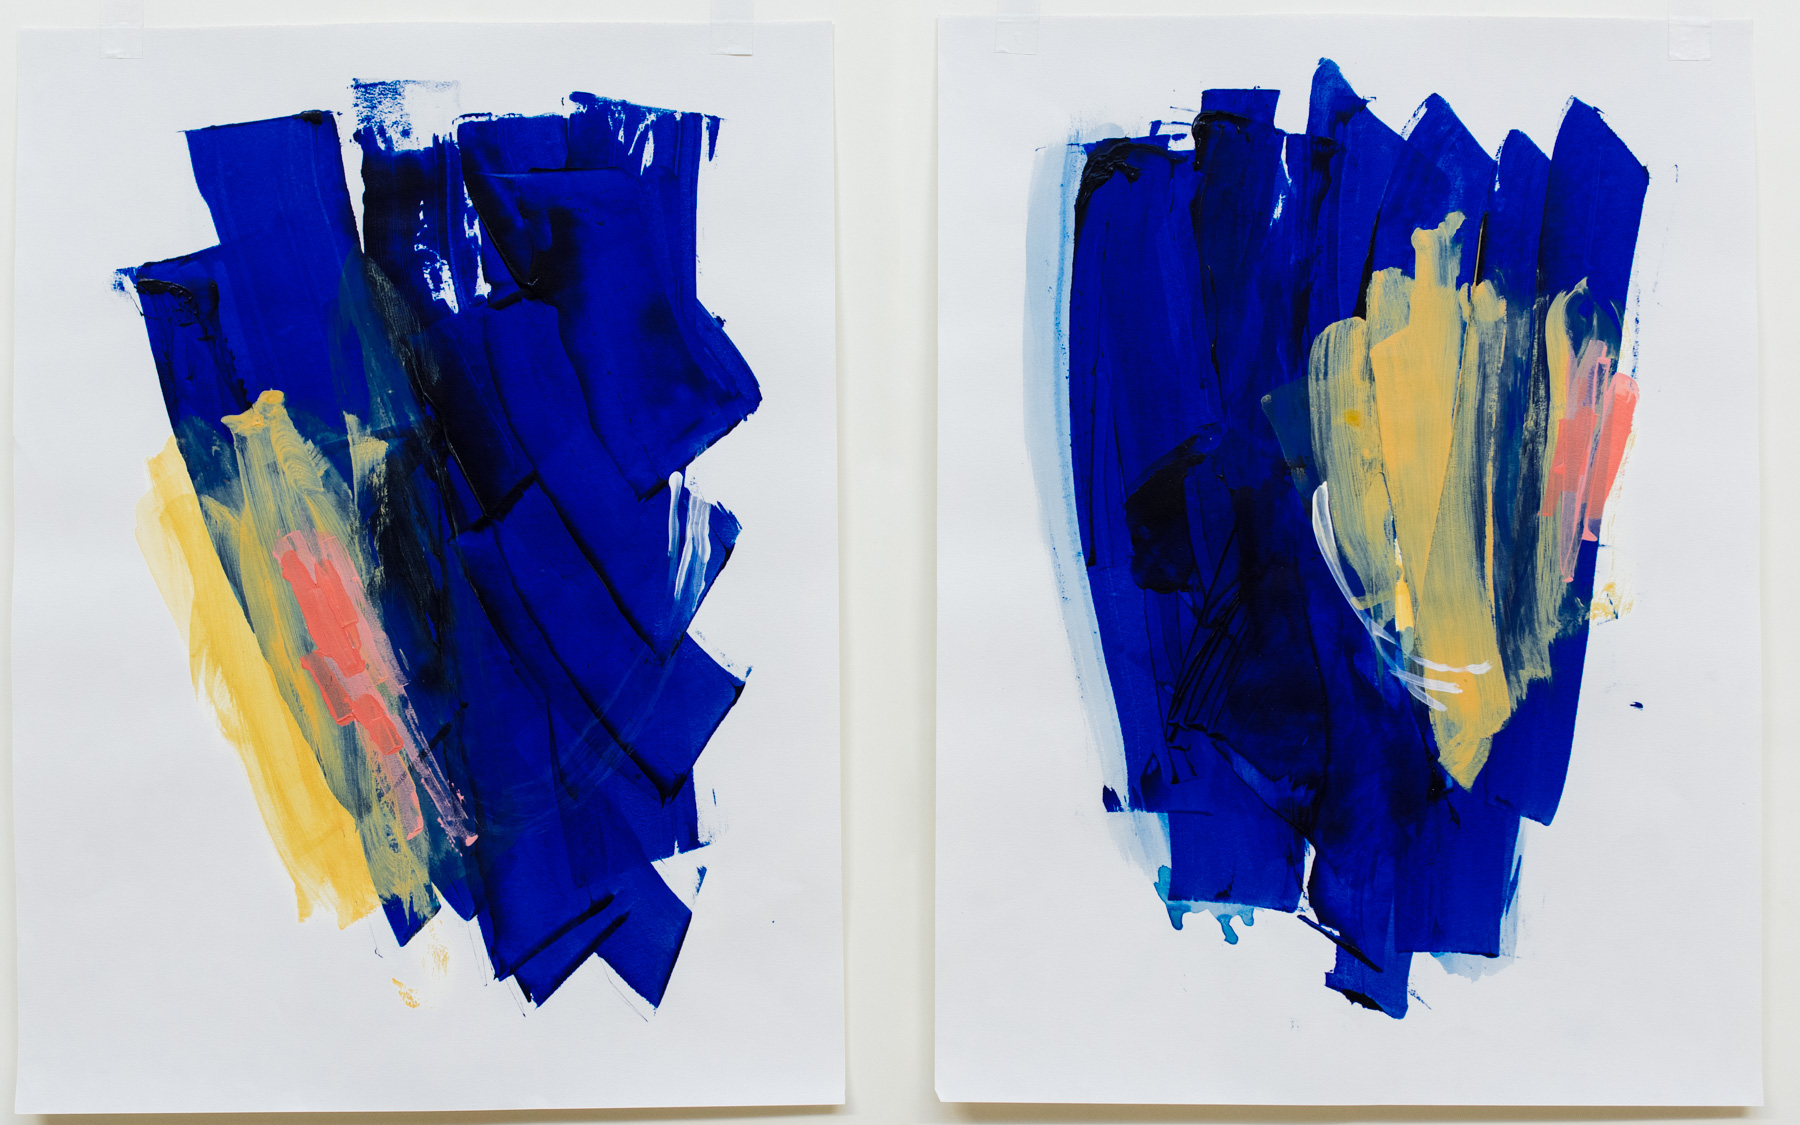 """Bow and Cherry #3-4 , 18""""x24"""" each, acrylic on paper, 2018, available"""